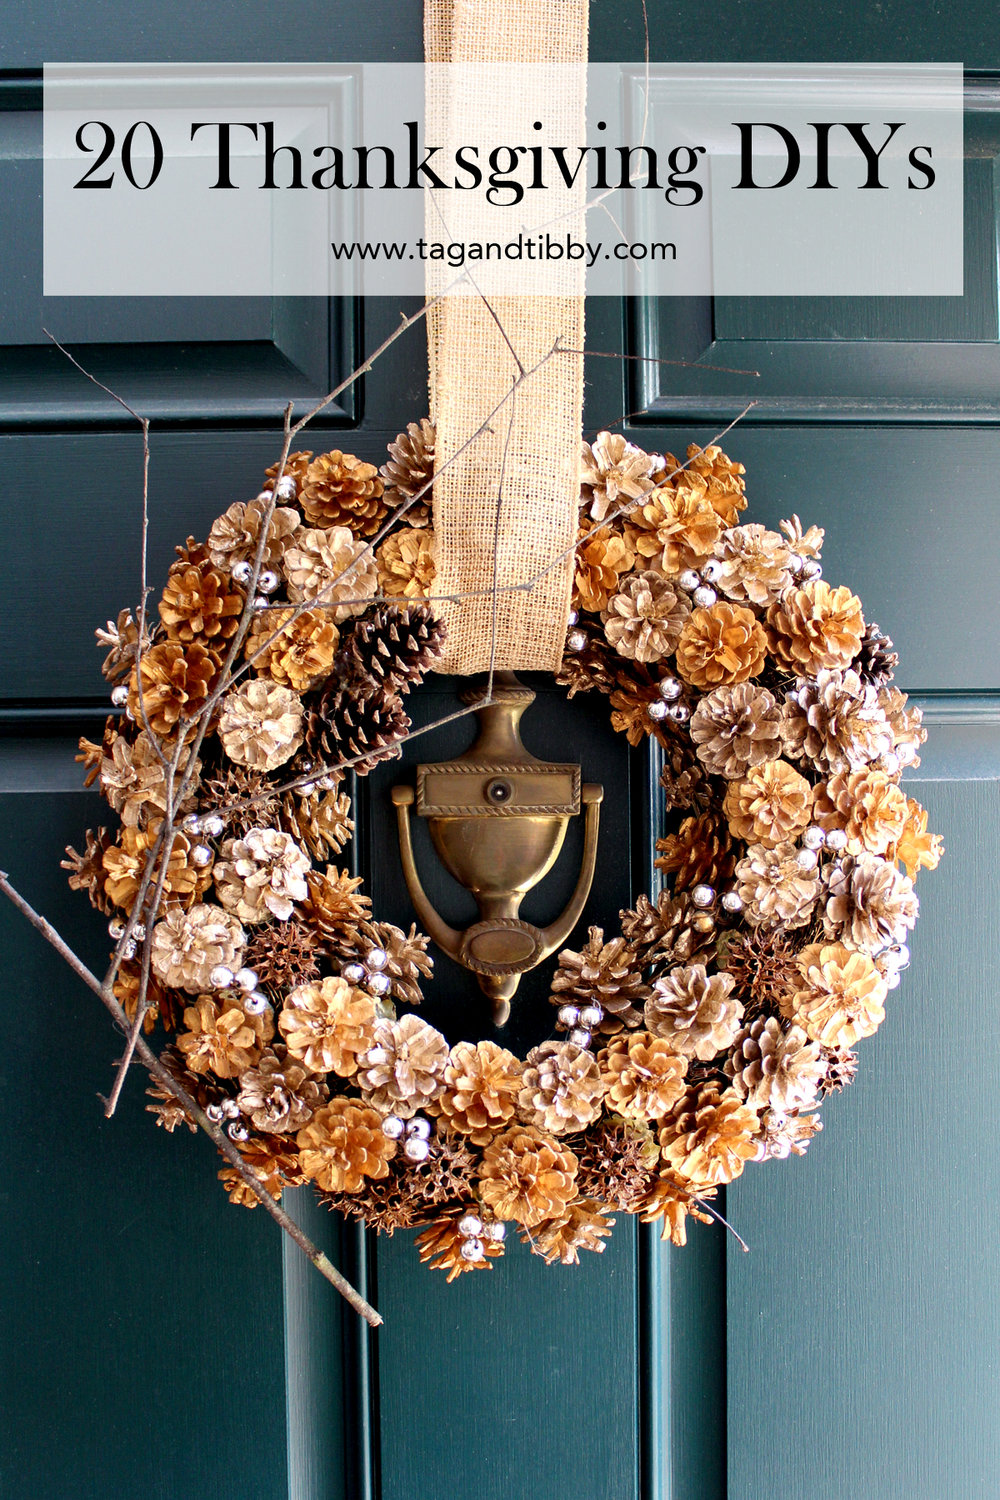 20 Thanksgiving DIY decor ideas!